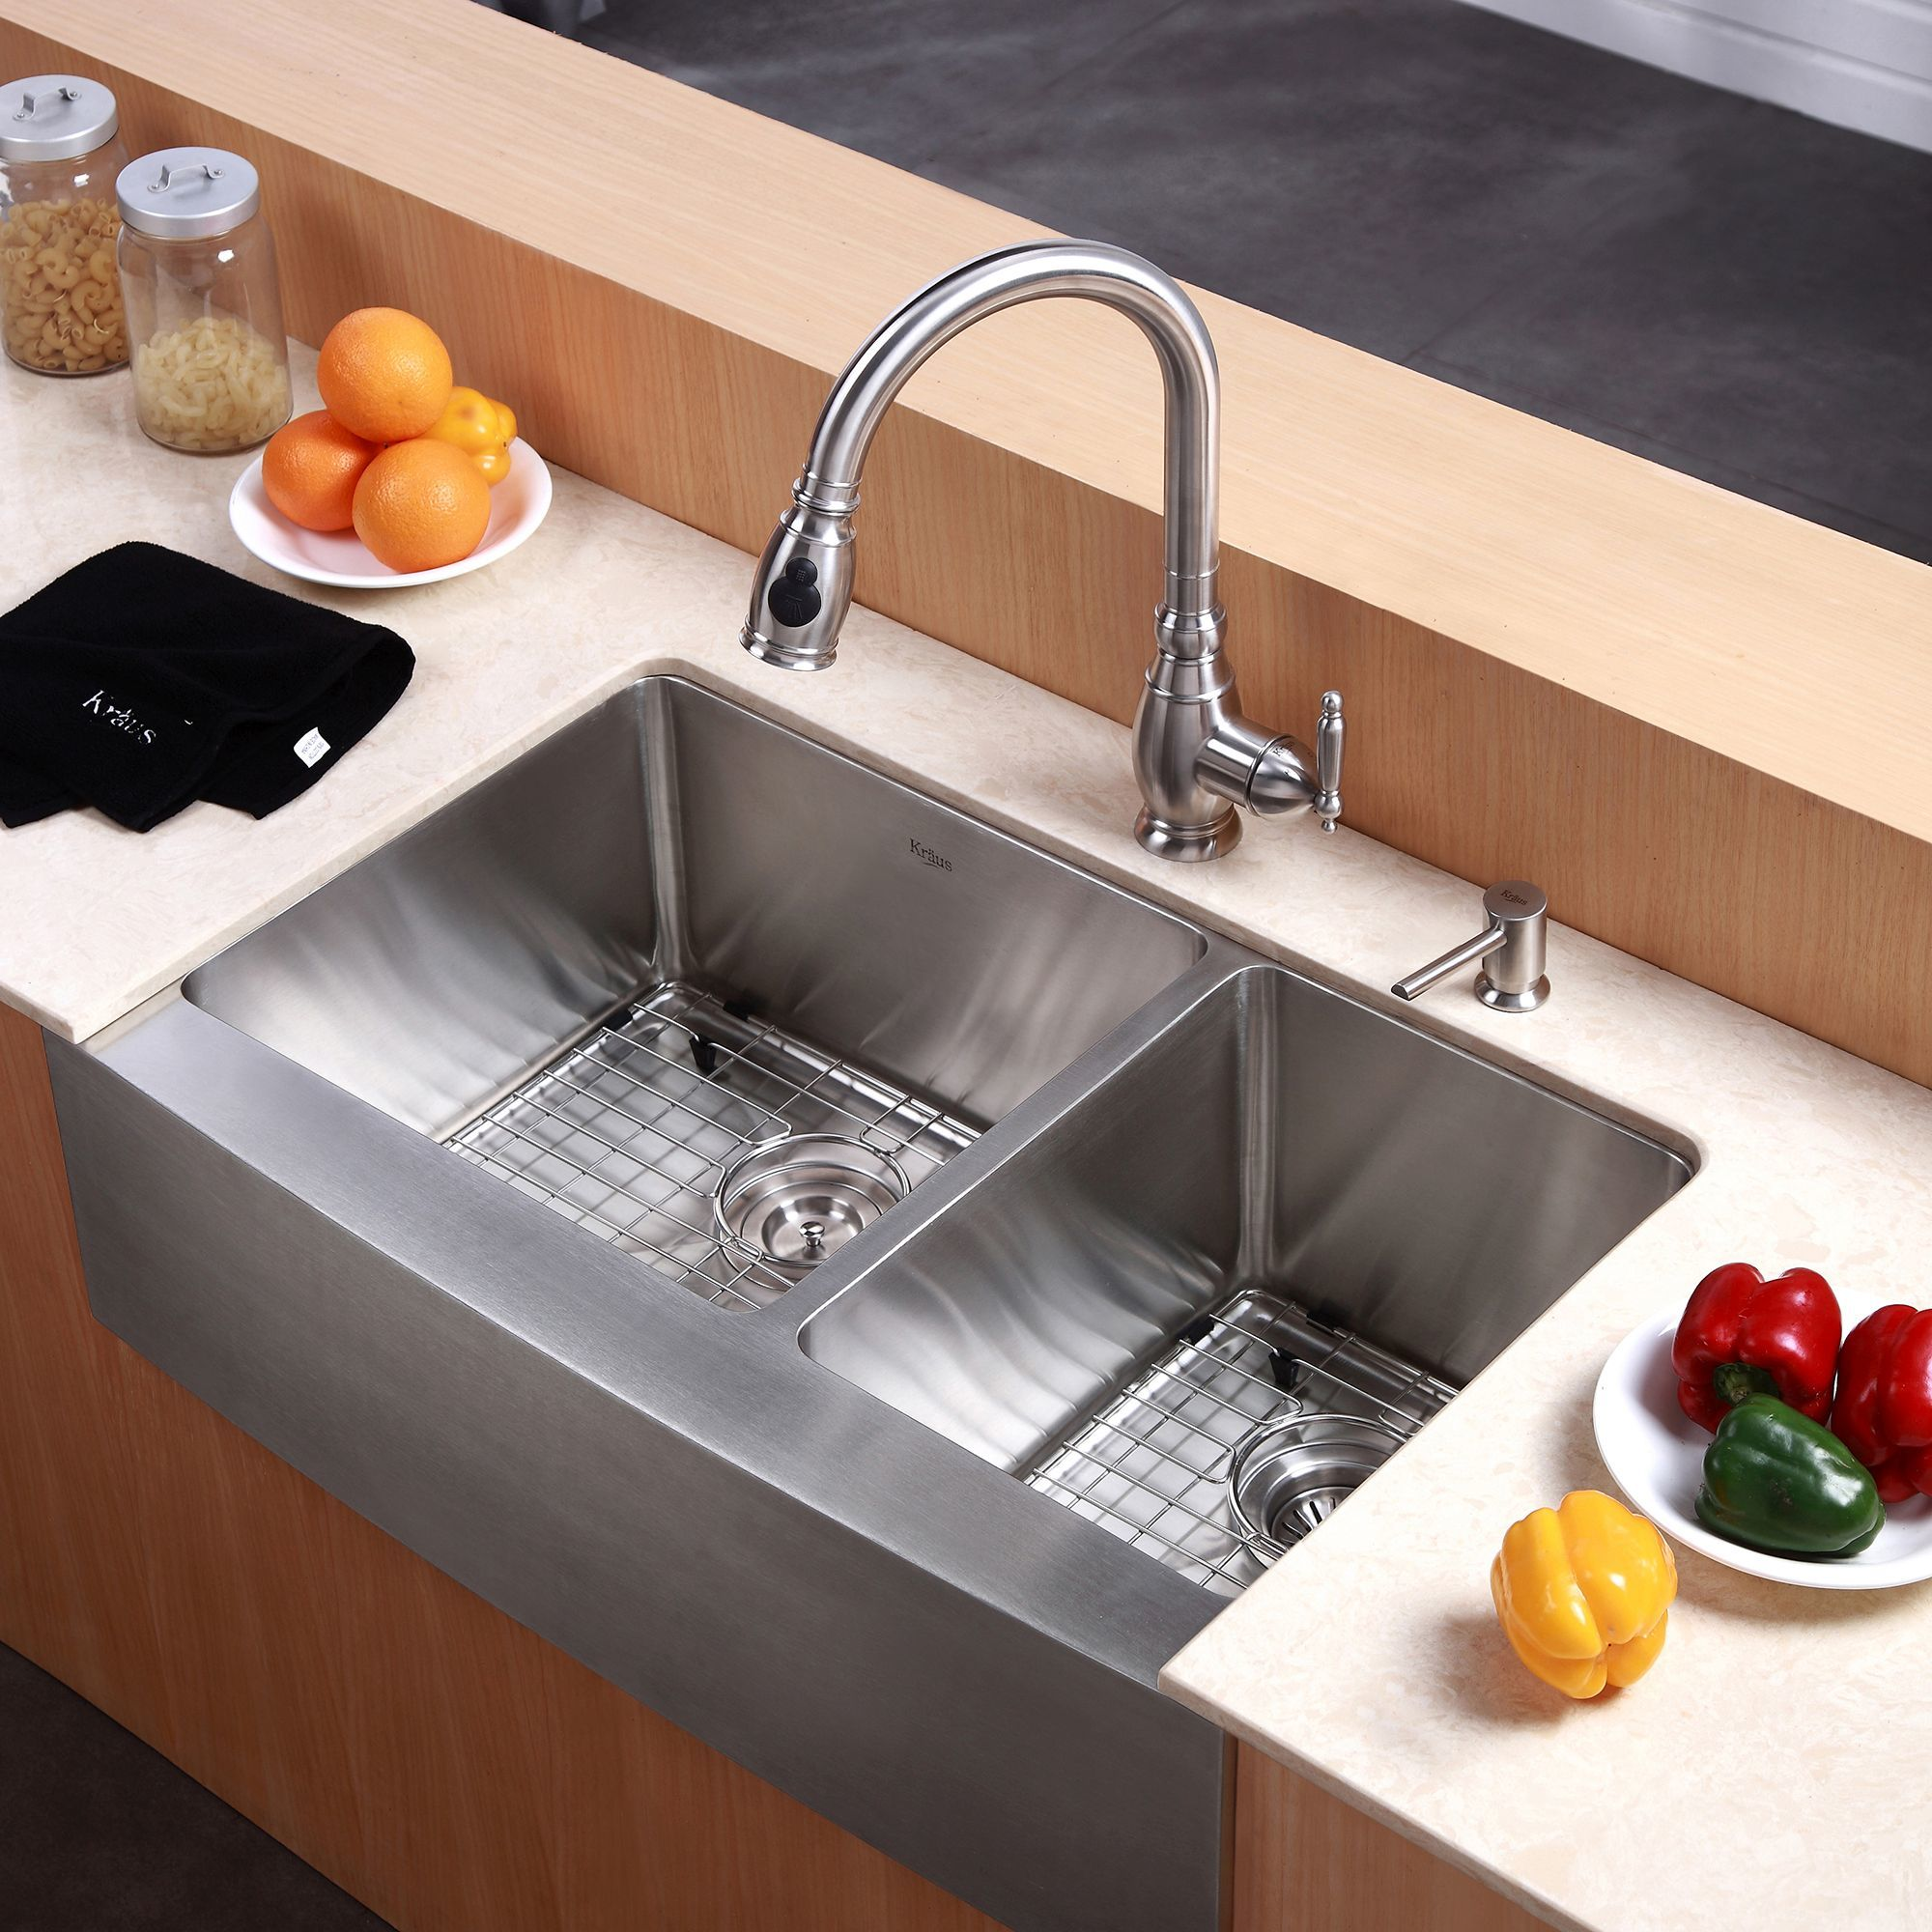 Kraus khf203 33 stainless steel 32 78 double basin 16 gauge kraus khf203 33 stainless steel 32 78 double basin 16 gauge stainless steel kitchen sink for farmhouse installations with 6040 split basin racks and workwithnaturefo